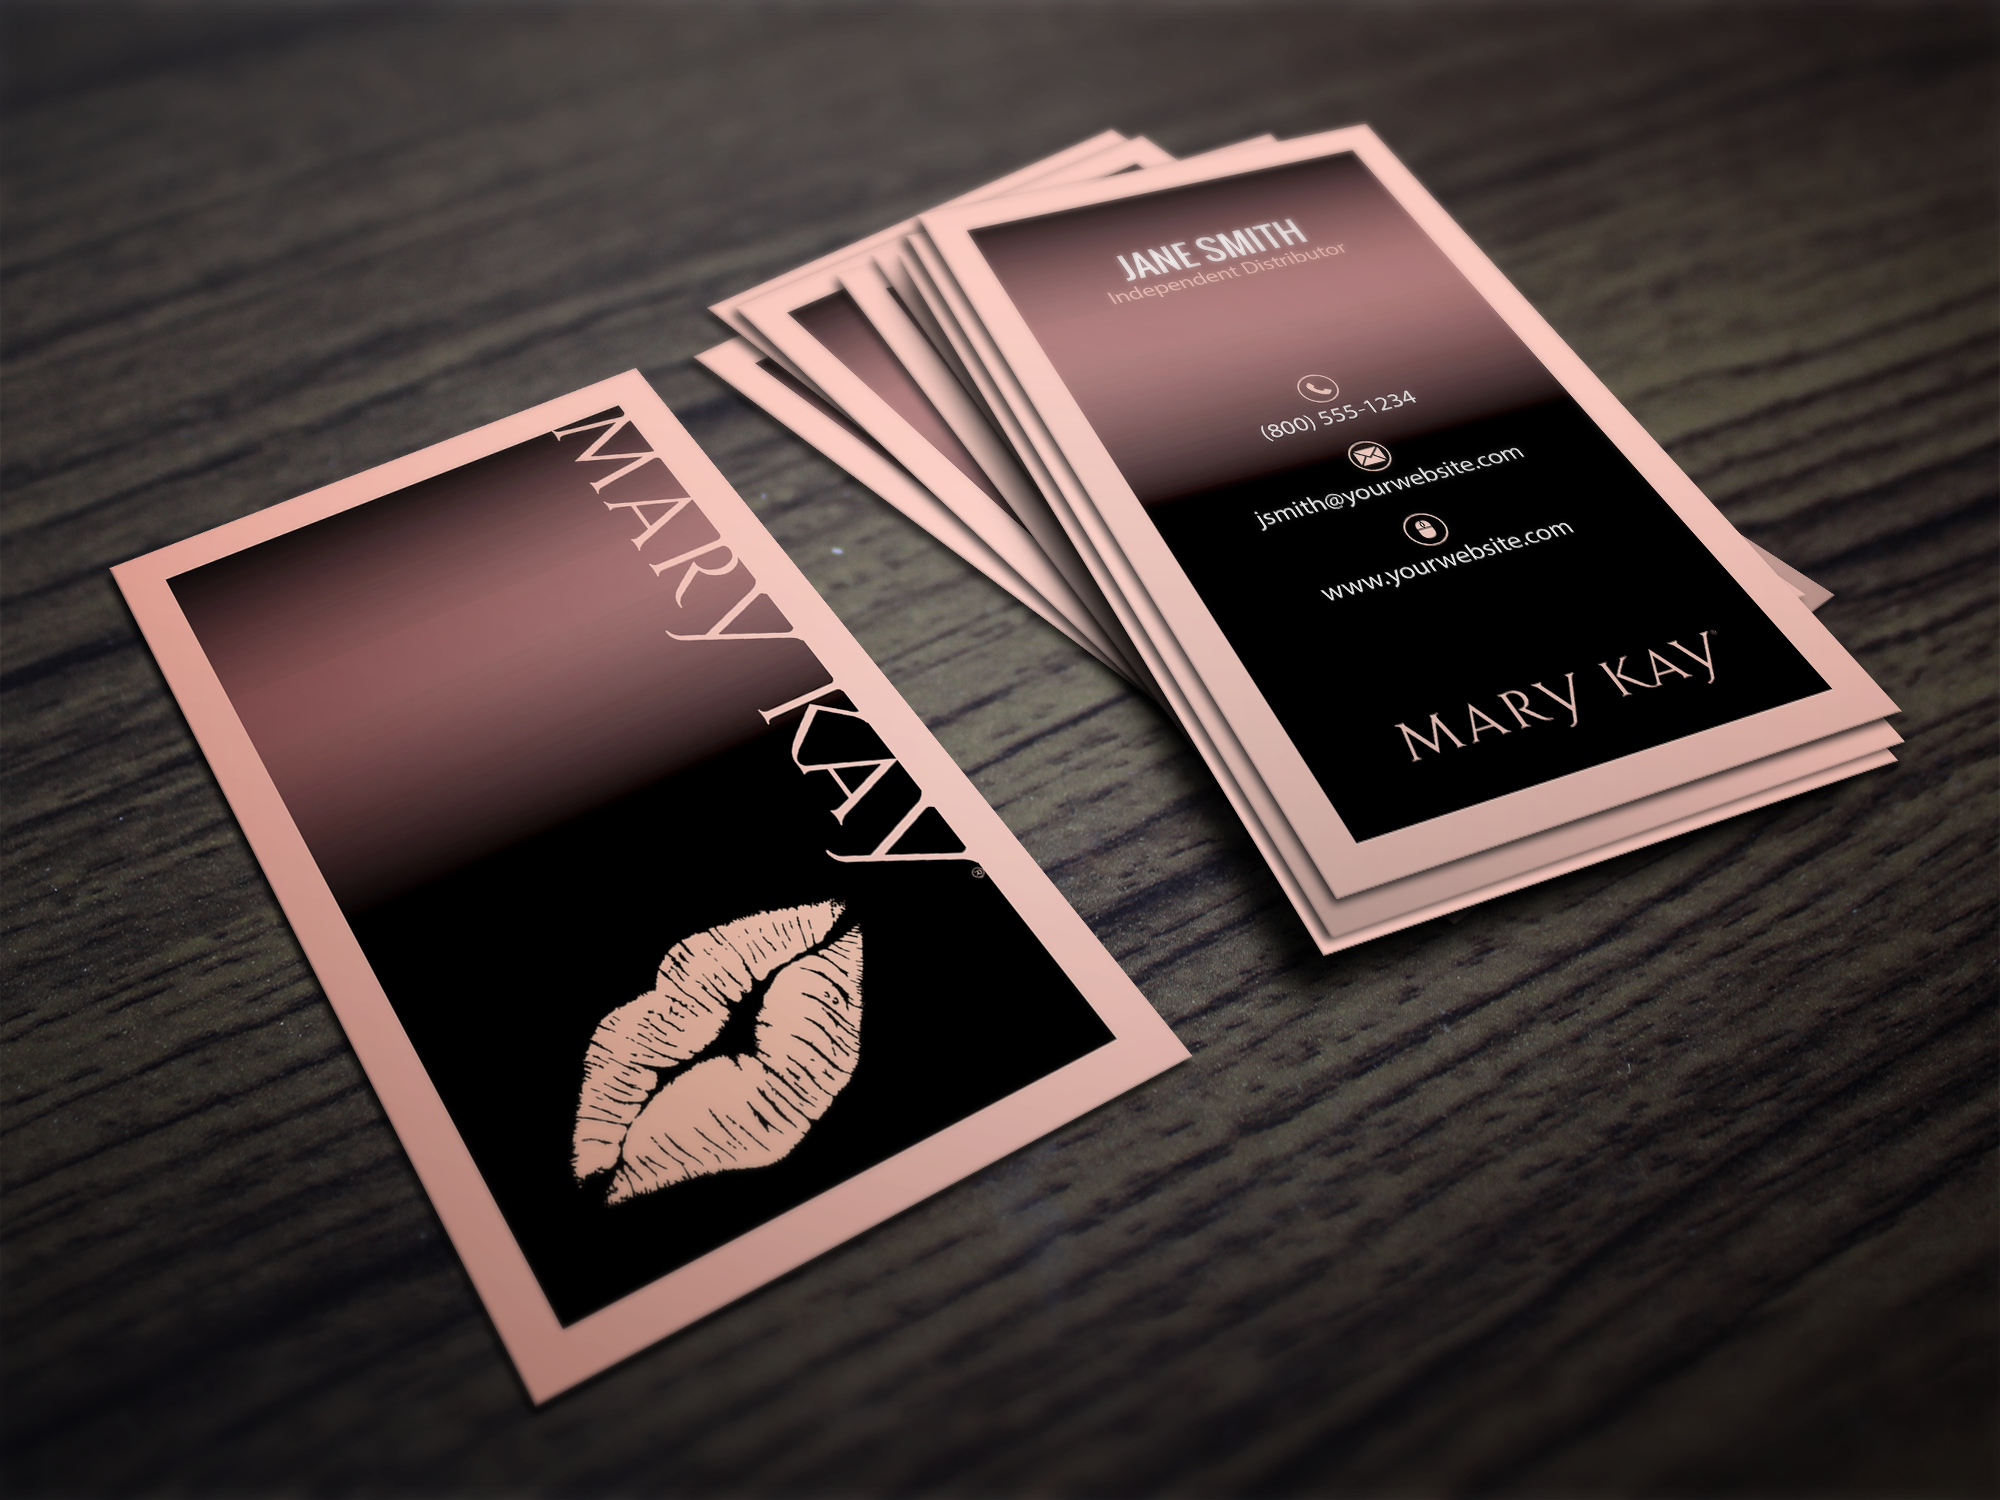 Mary kay business cards mary kay cosmetics mary kay and card cute business card template designs for mary kay cosmetic consultants cute pink kiss flashek Images